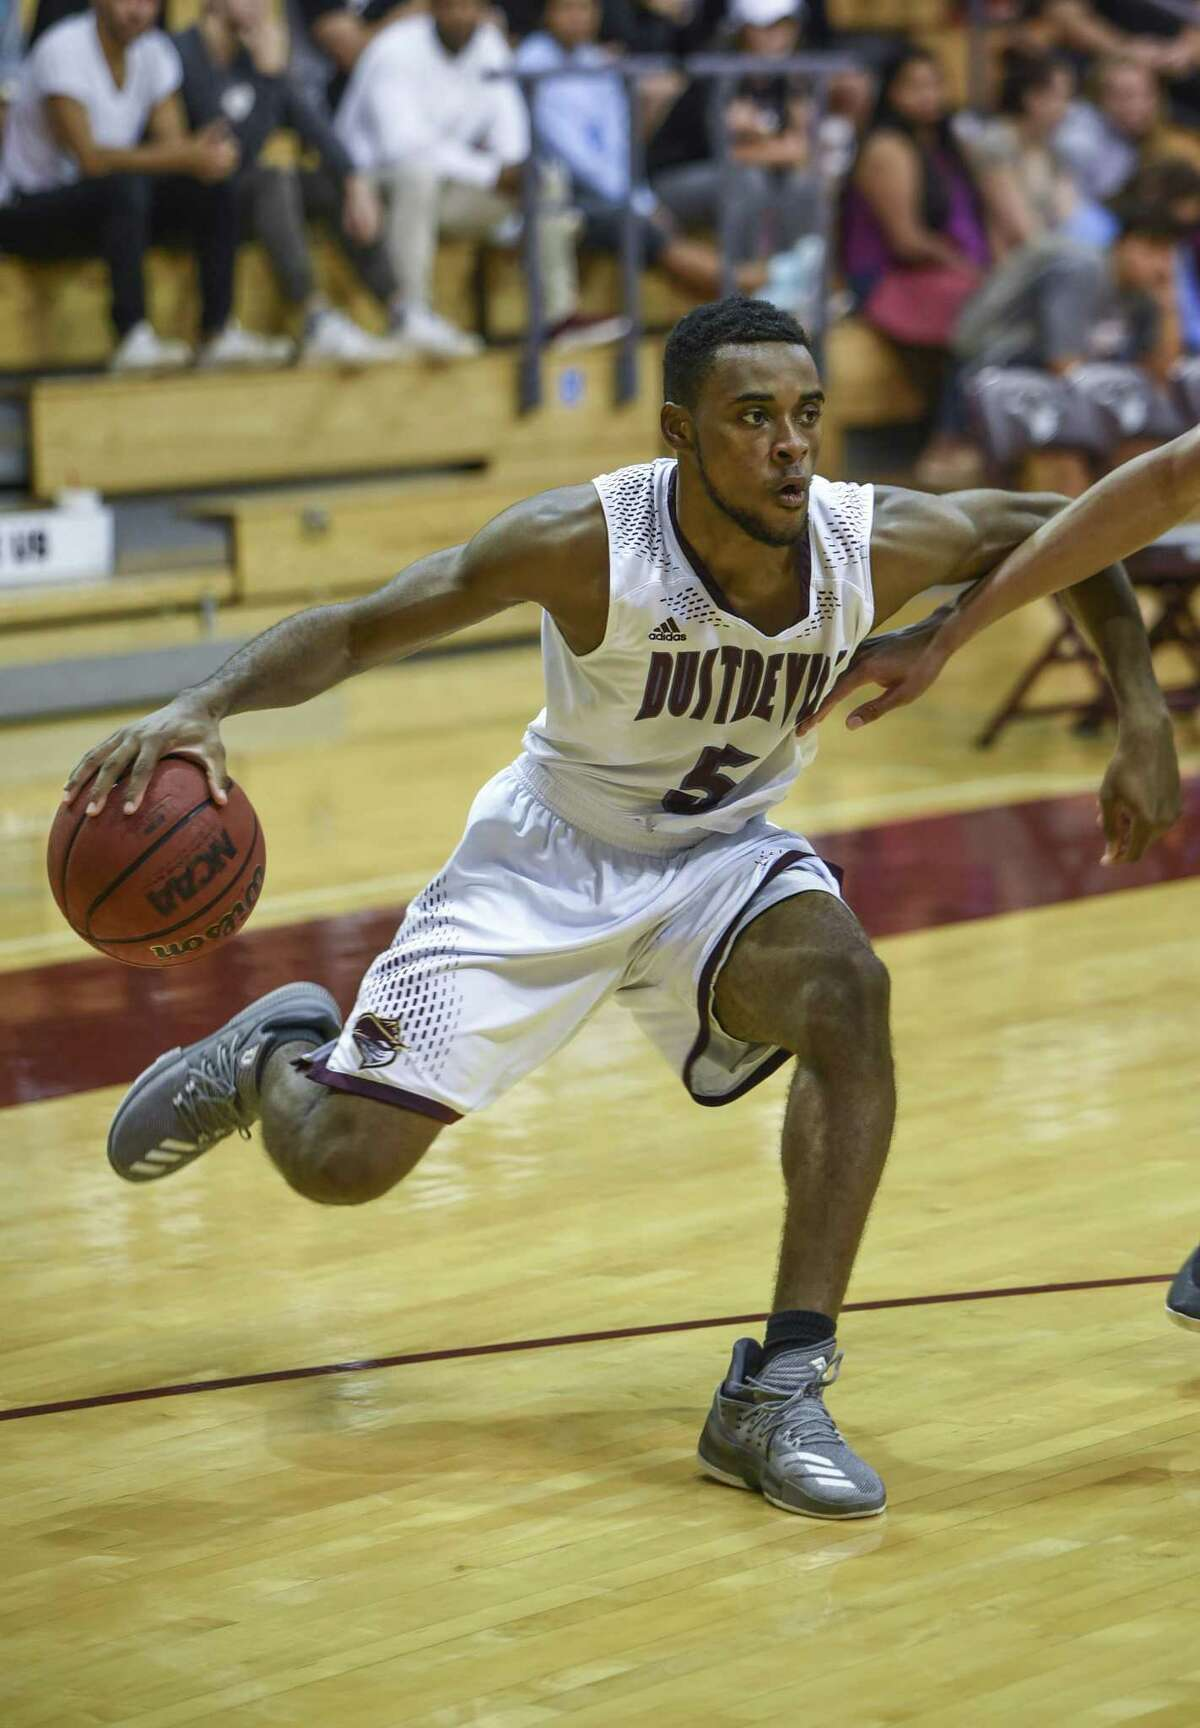 Point guard Jeremy Wright had a career-high 31 points in the Dustdevils 84-72 loss to No. 22 Dallas Baptist in the Heartland Conference tournament quarterfinal opener Thursday night. TAMIU gave up a 21-2 run to end the final eight minutes of the first half in the defeat.